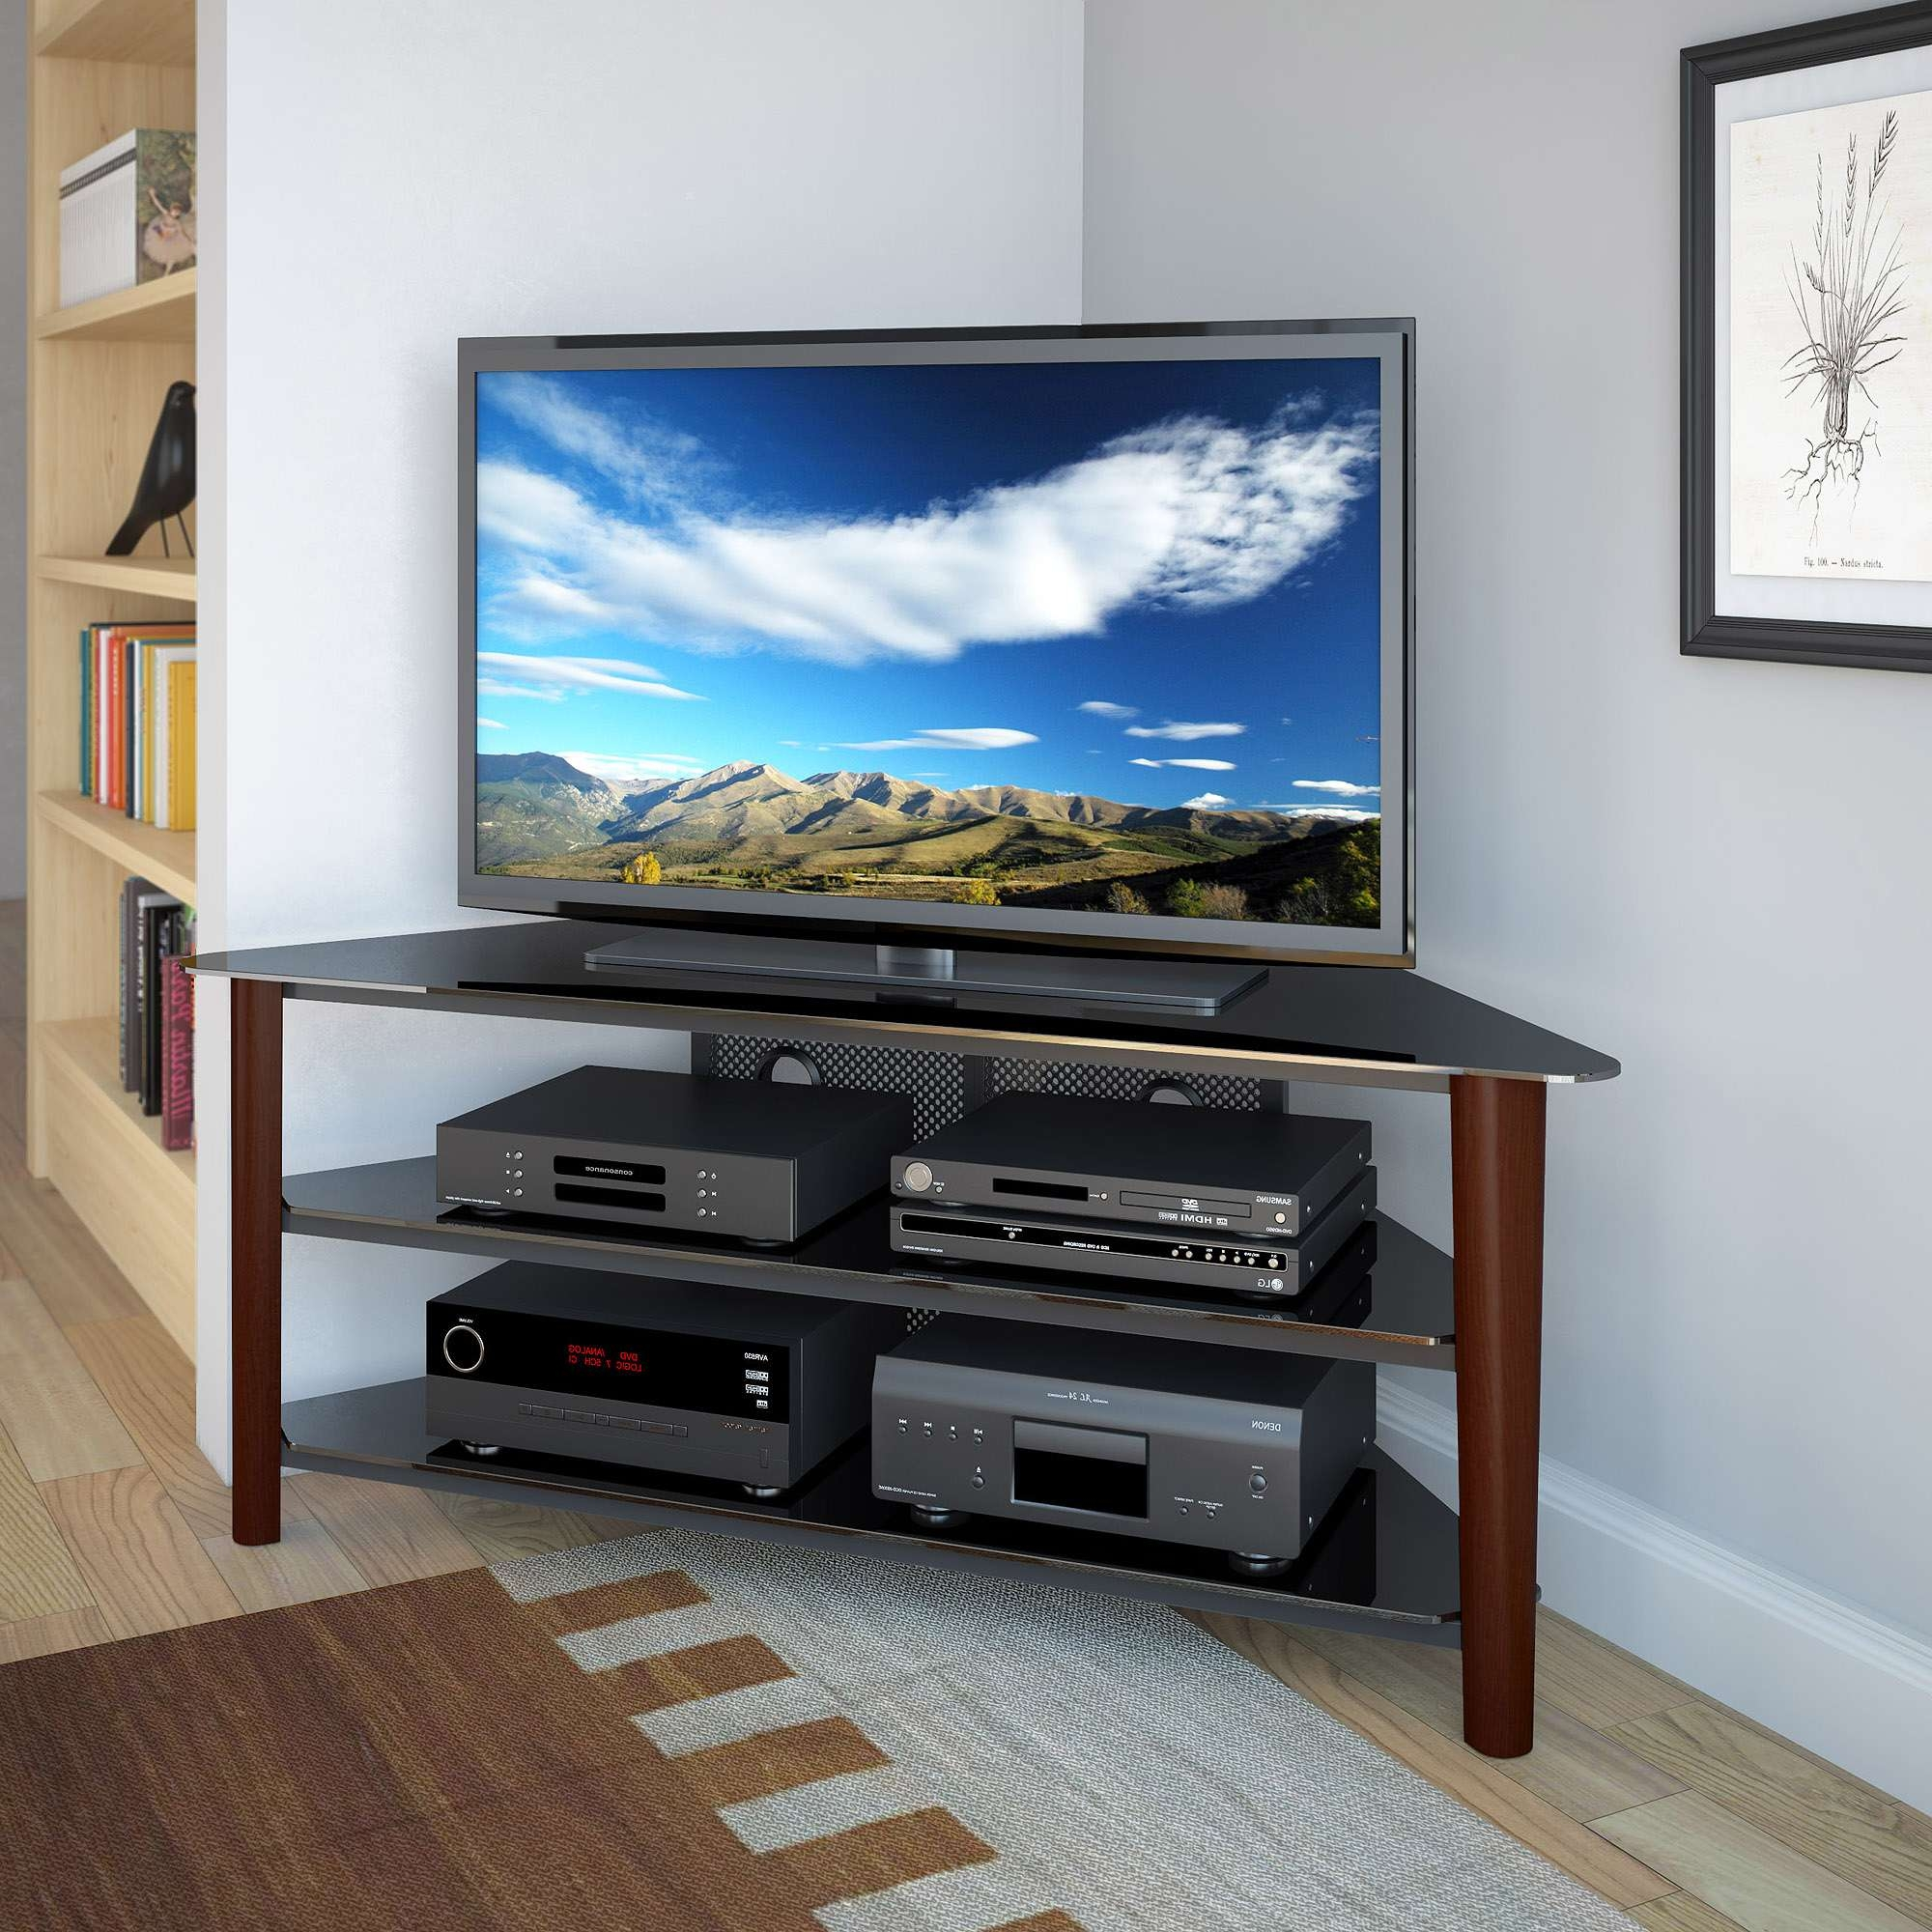 Good Tv Stands 55 Inch Flat Screen 61 On Interior Decor Home With Throughout 61 Inch Tv Stands (View 15 of 15)